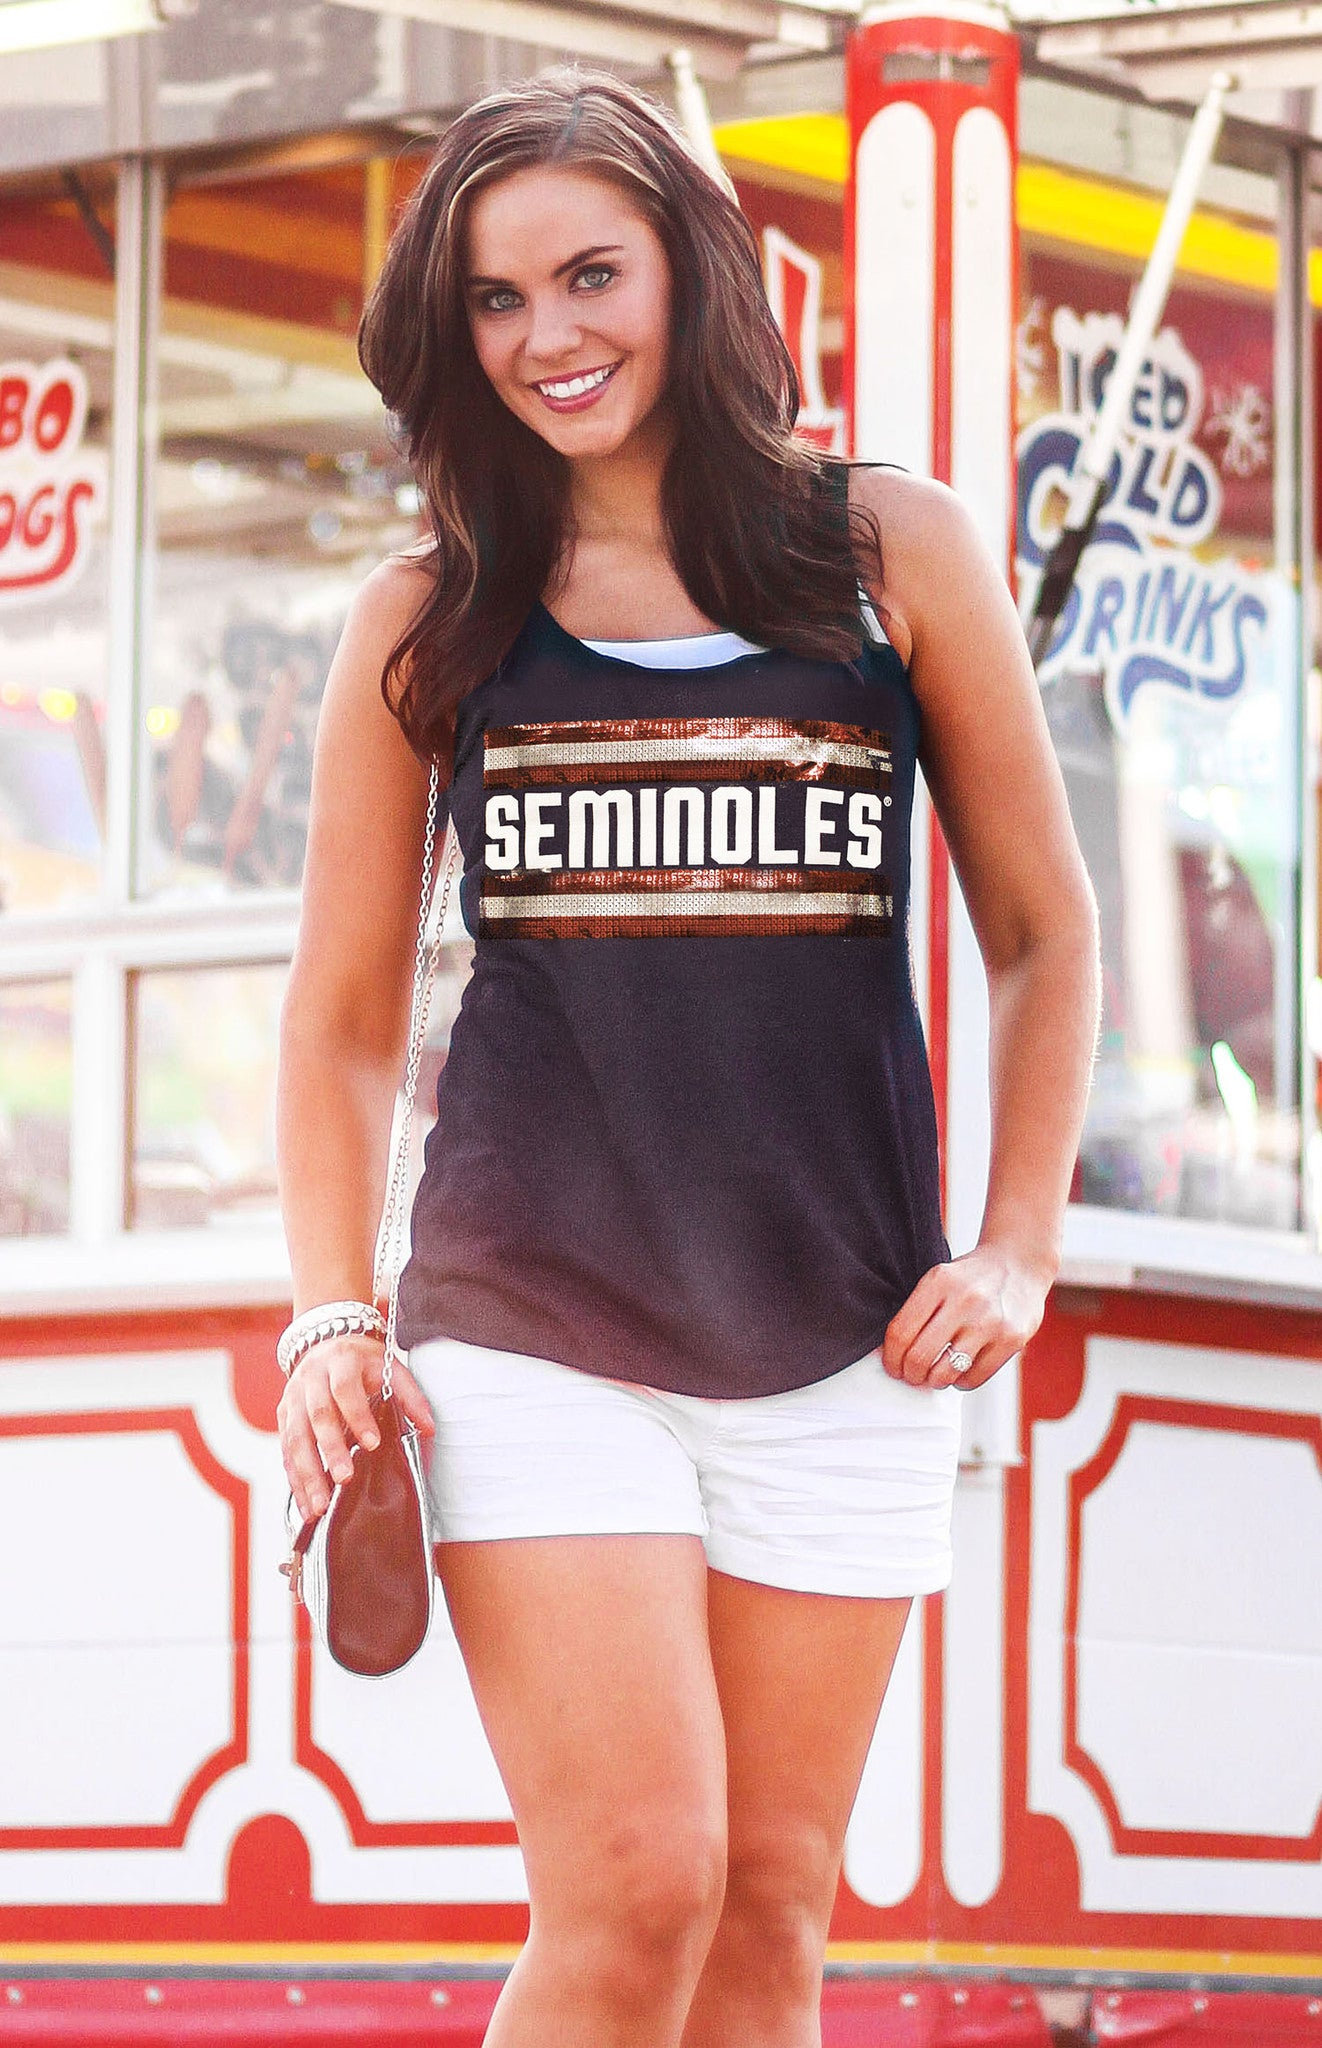 Seminoles Retro Racerback Tank Tank Game Day Couture - Bows and Arrows FSU Seminoles and UF Gators Women's Game Day Dresses and Apparel